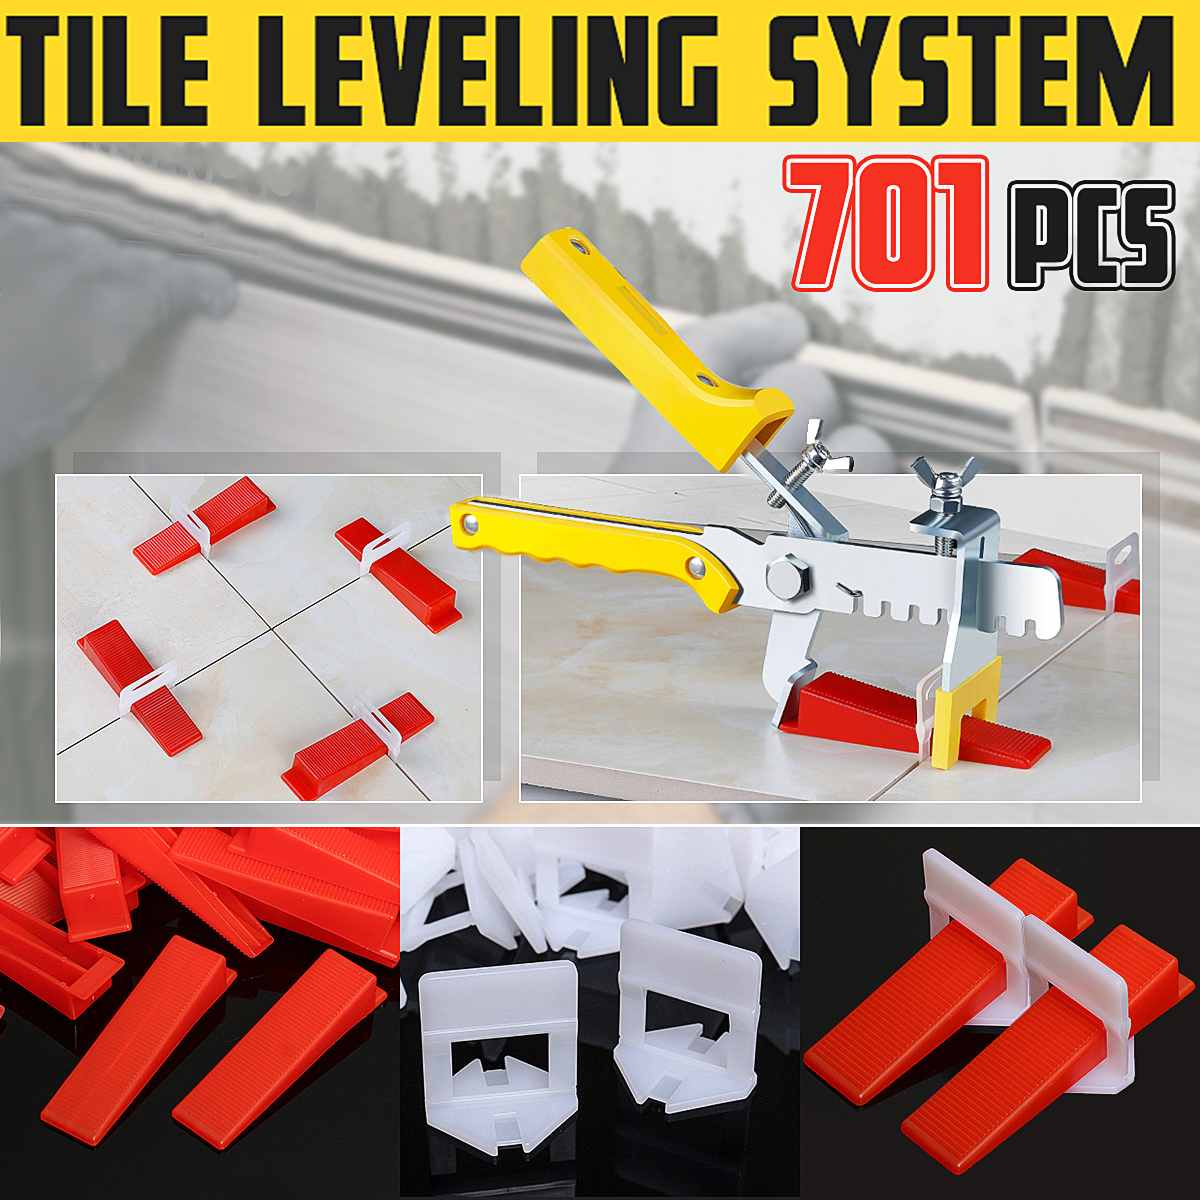 700Pcs Tile Leveling System 500 Clips + 200 Wedges + 1 Pliers Plastic Ceramic Tiling Flooring Tools Tile Spacer